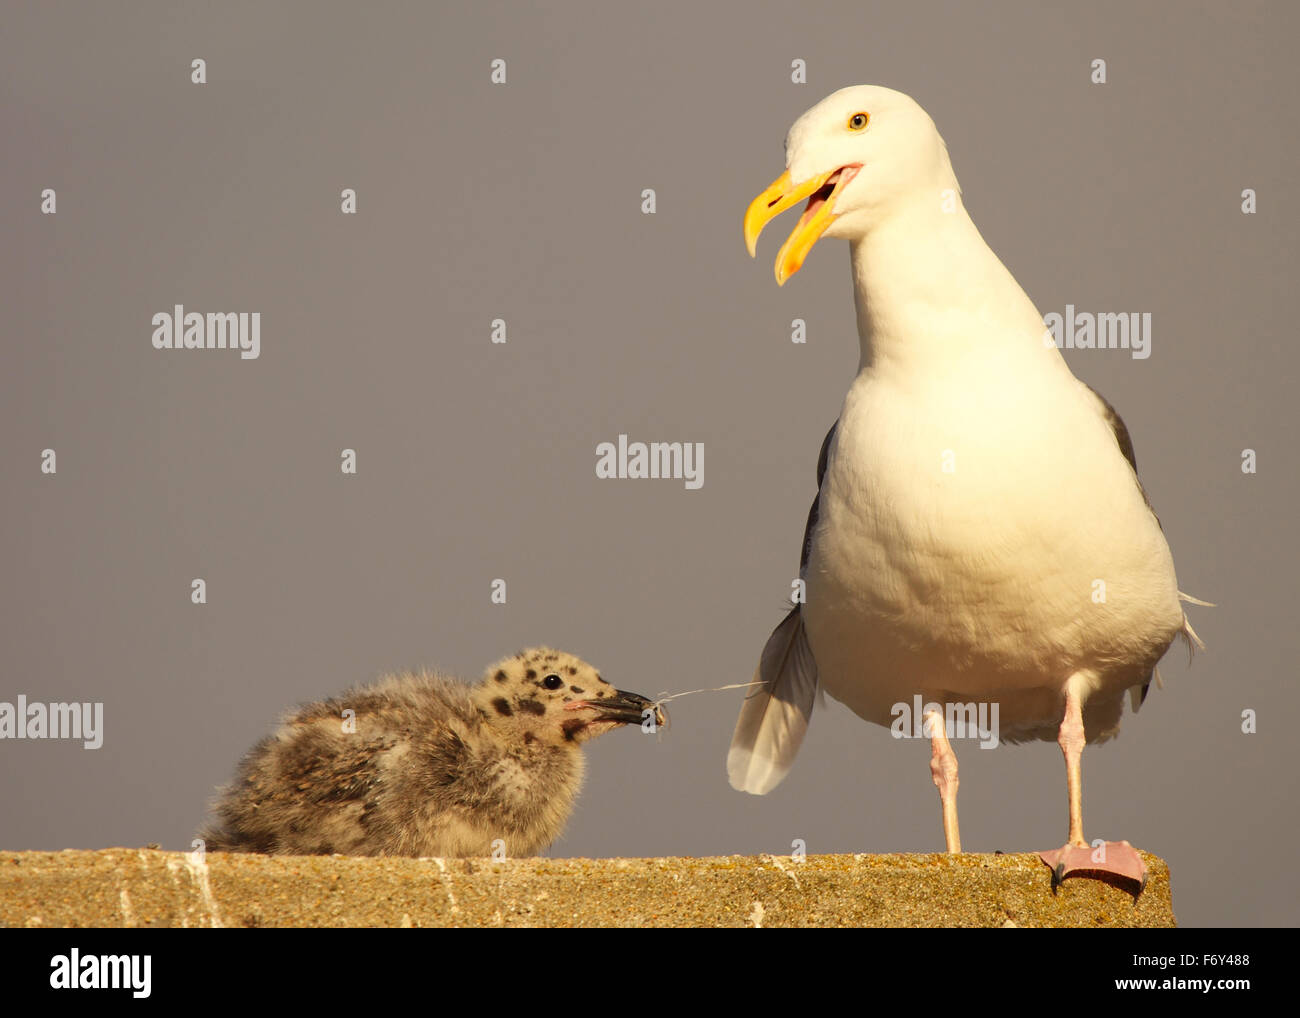 A baby Western Gull tugging on its parent's tail and getting a response. - Stock Image